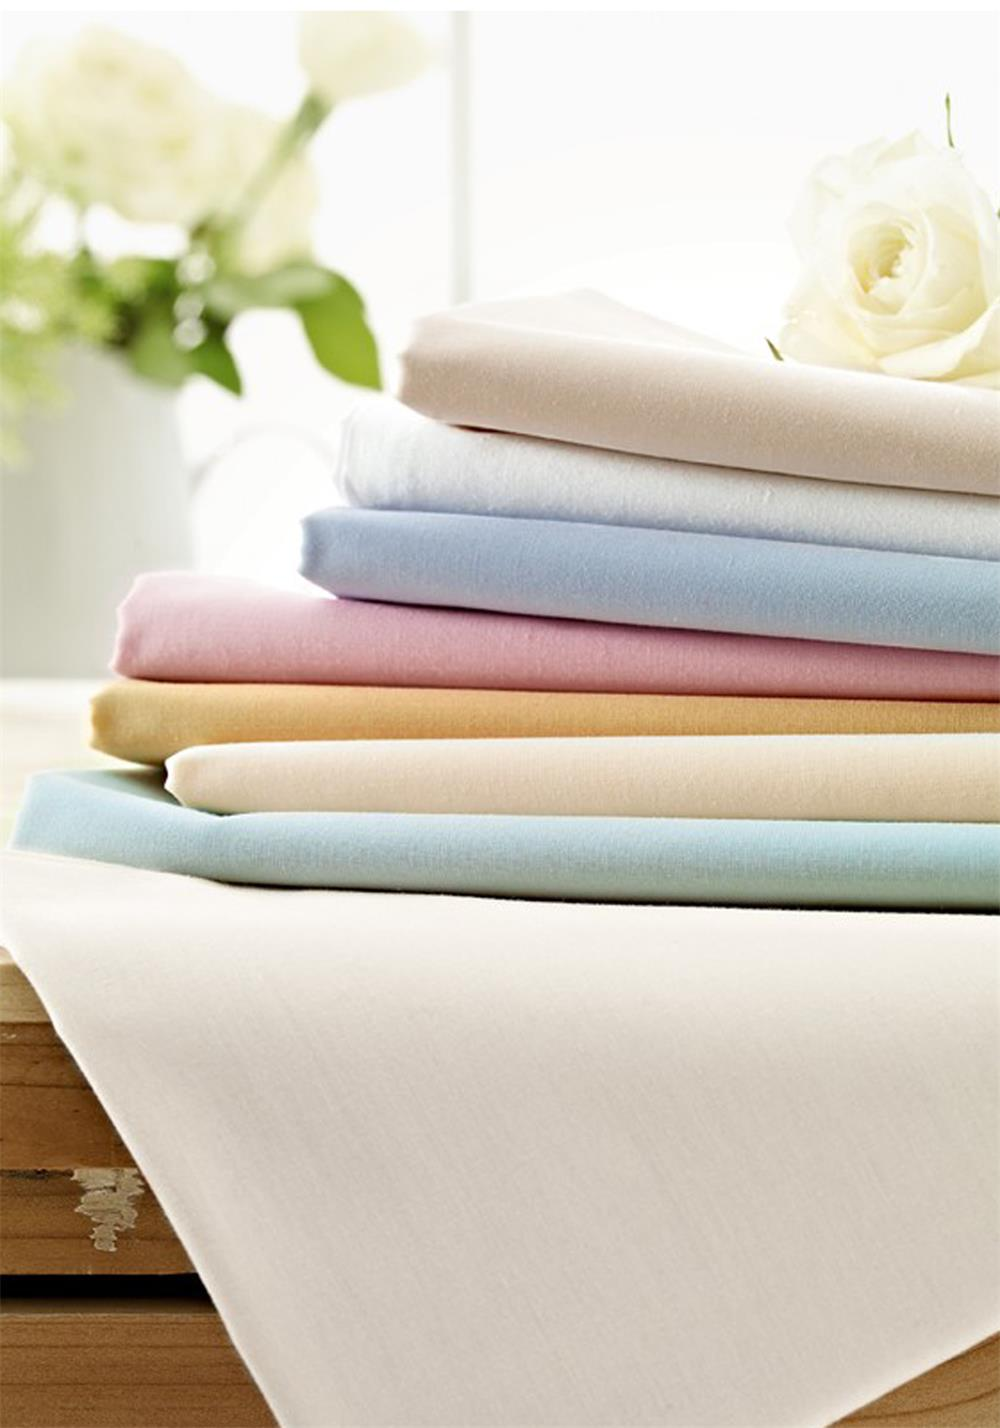 Helena Springfield 180 Thread Court Percale Fitted Sheet, Linen